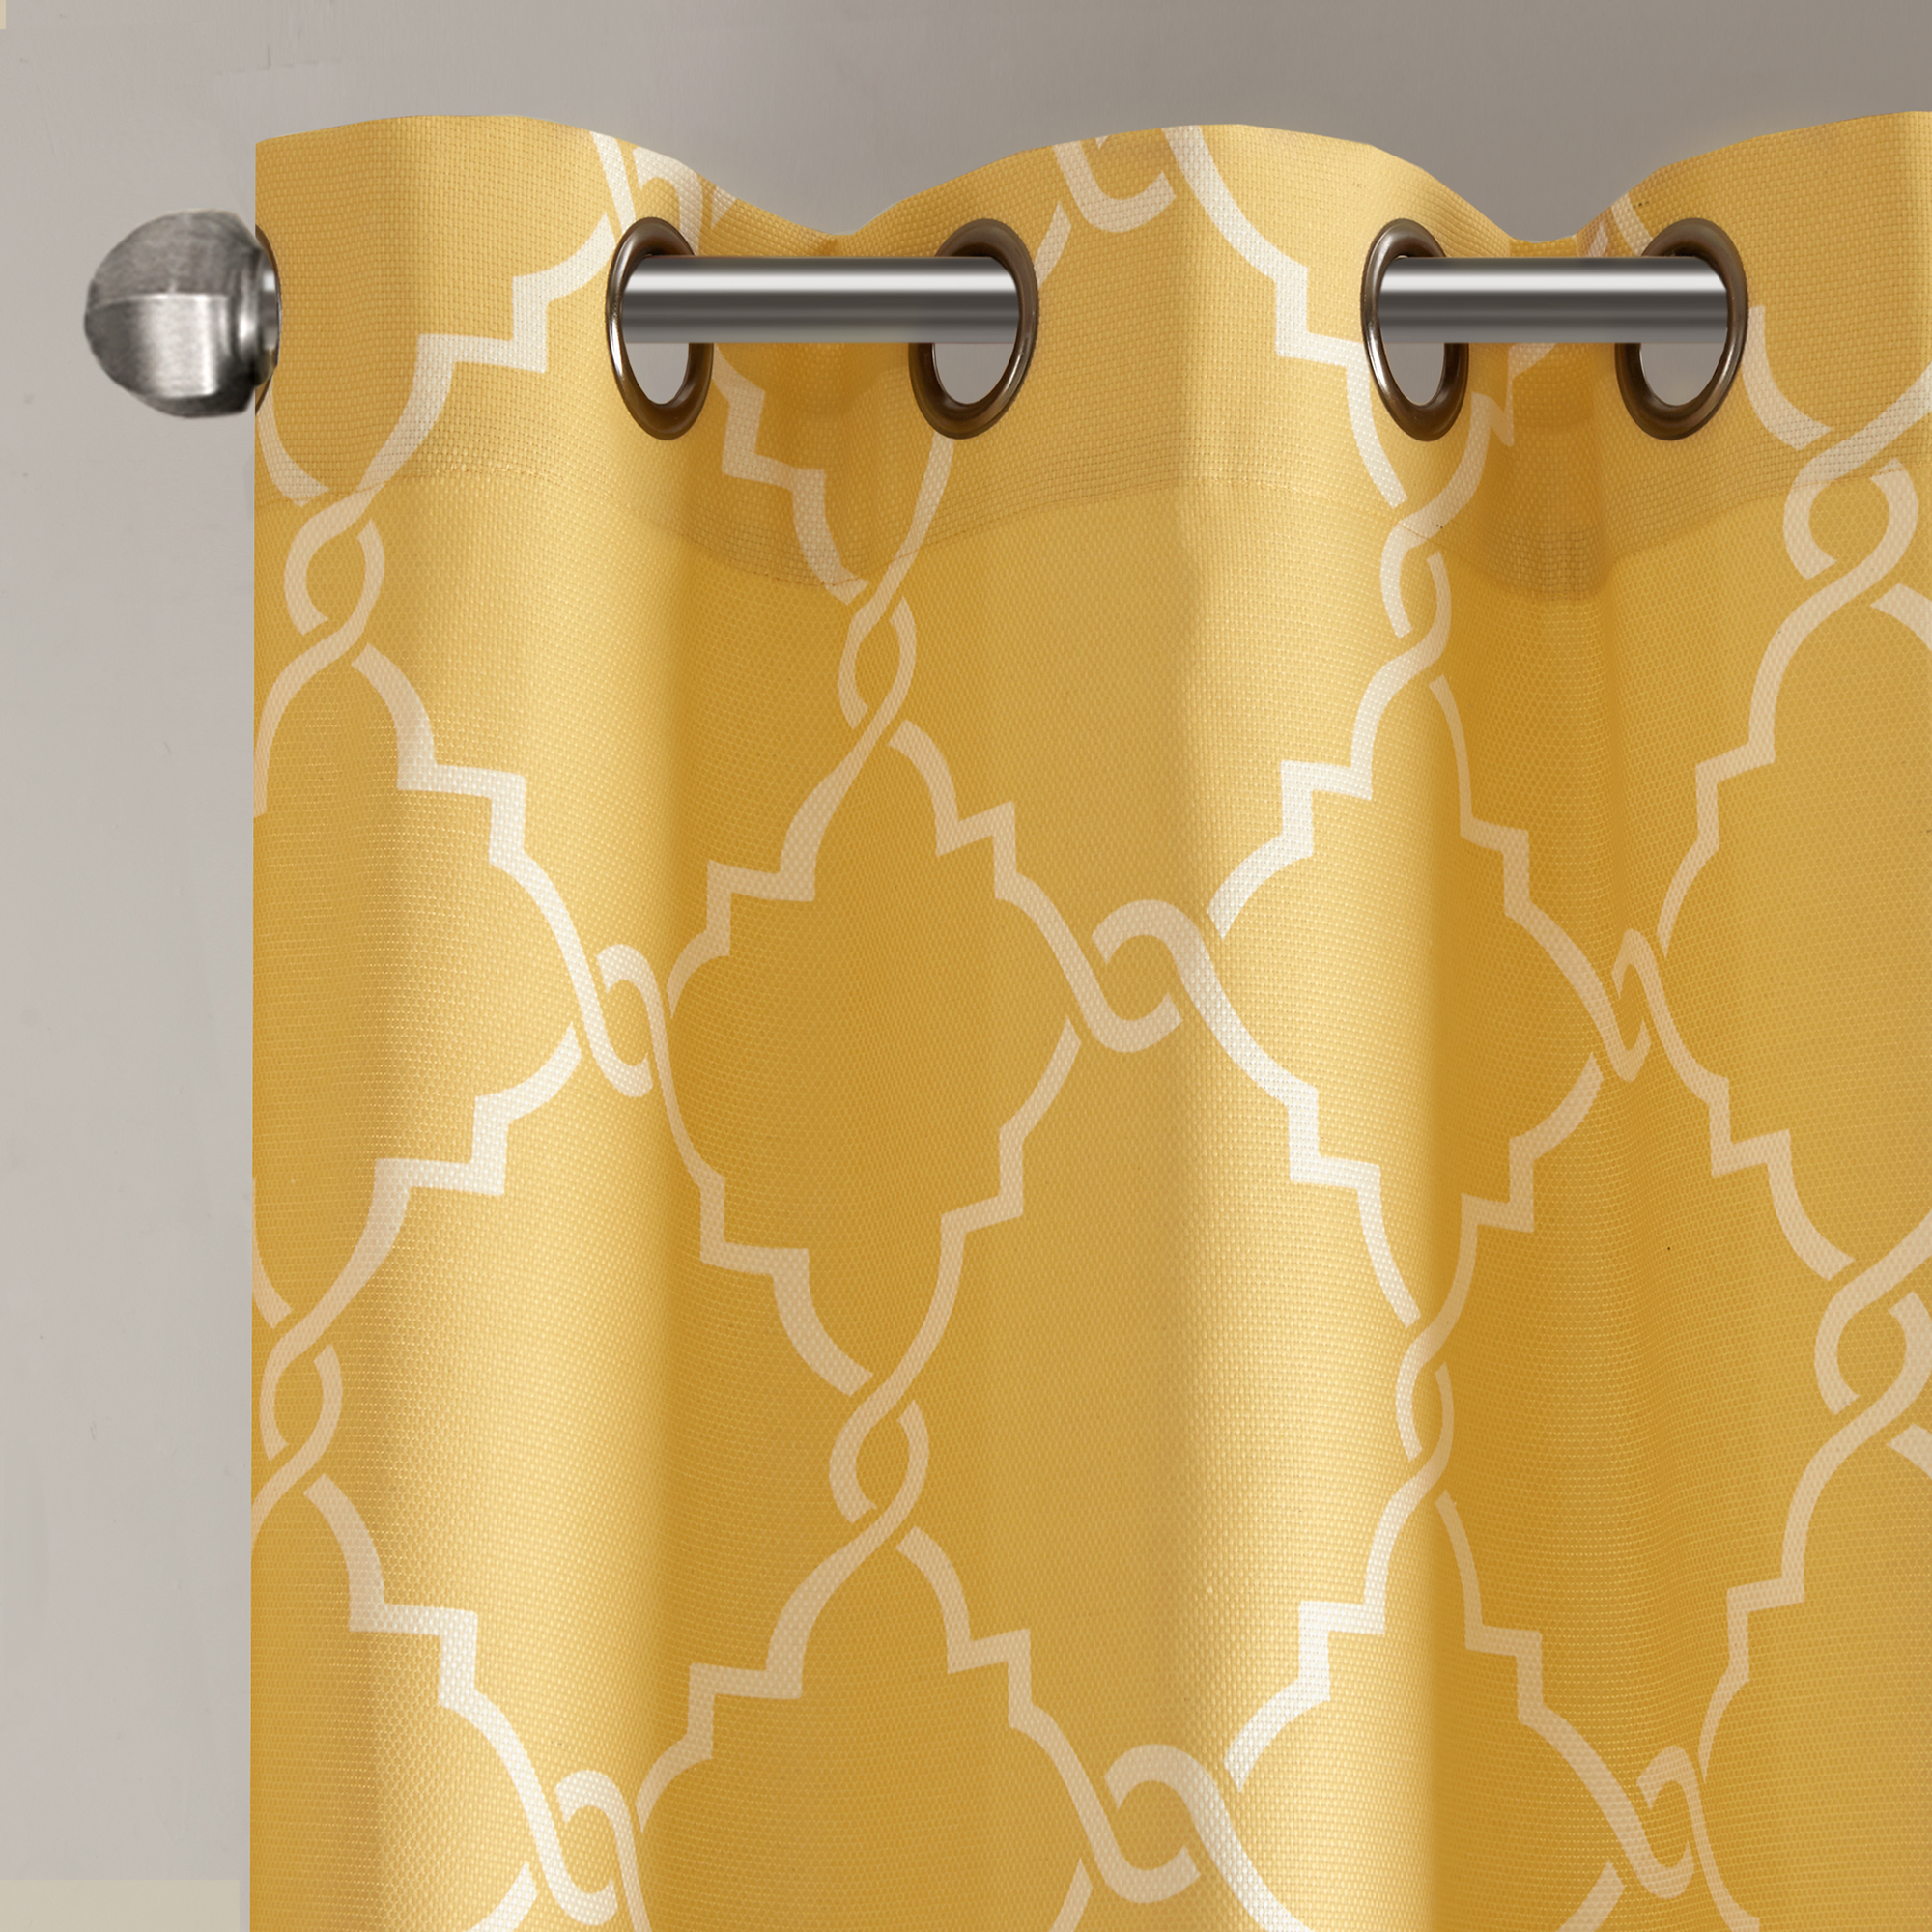 Fretwork Print Pattern Single Curtain Panels In 2020 Home Essence Sereno Fretwork Print Patio Window Panel (View 3 of 20)